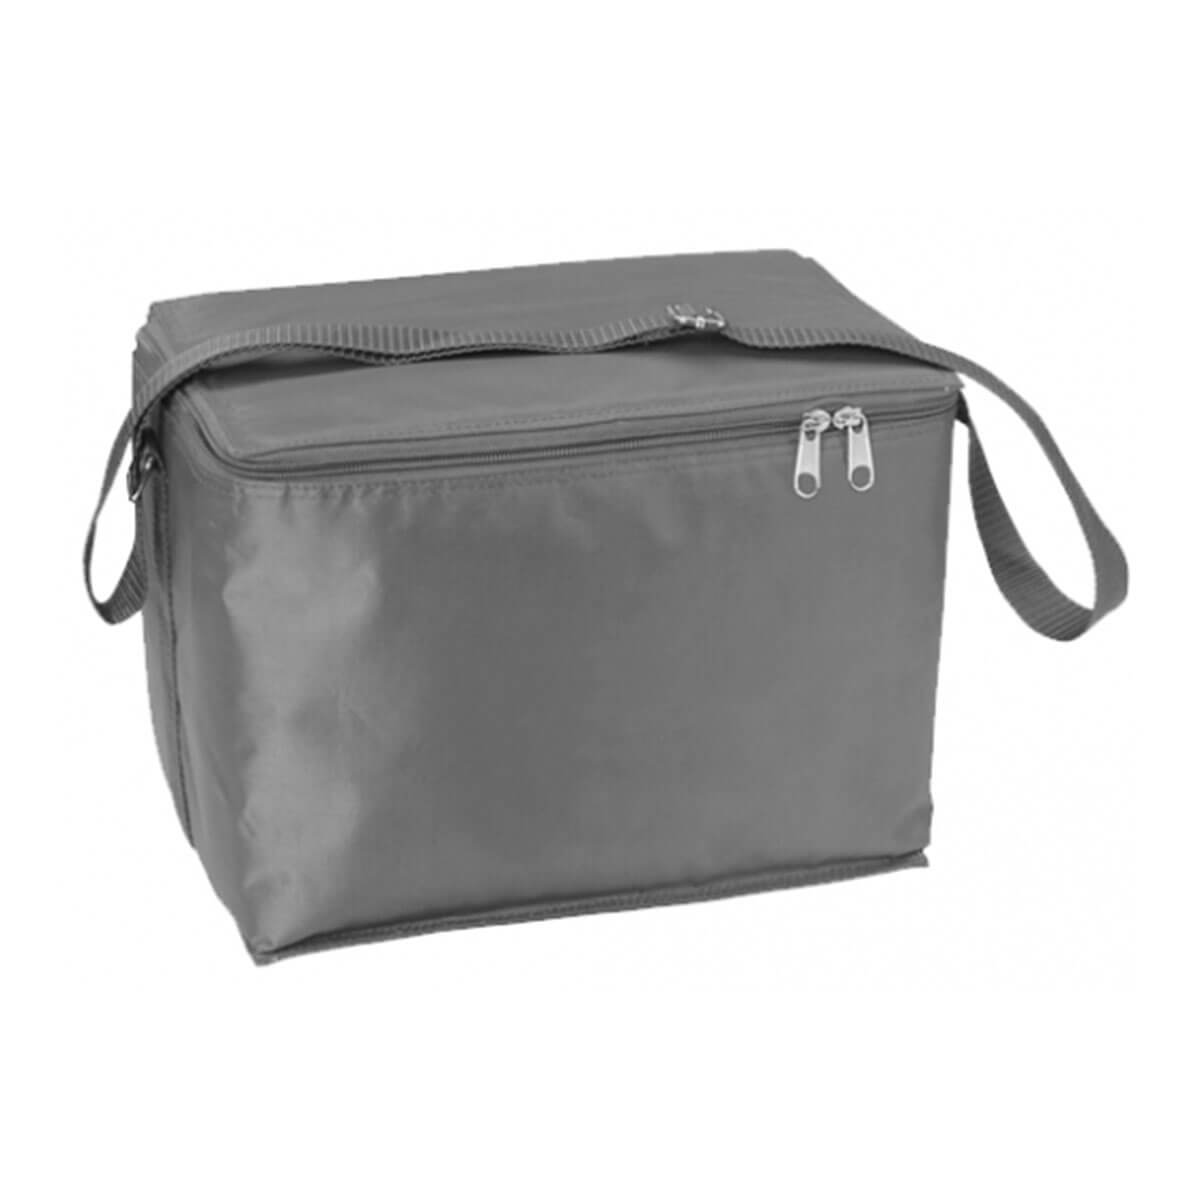 12 Can Cooler Bag-Silver